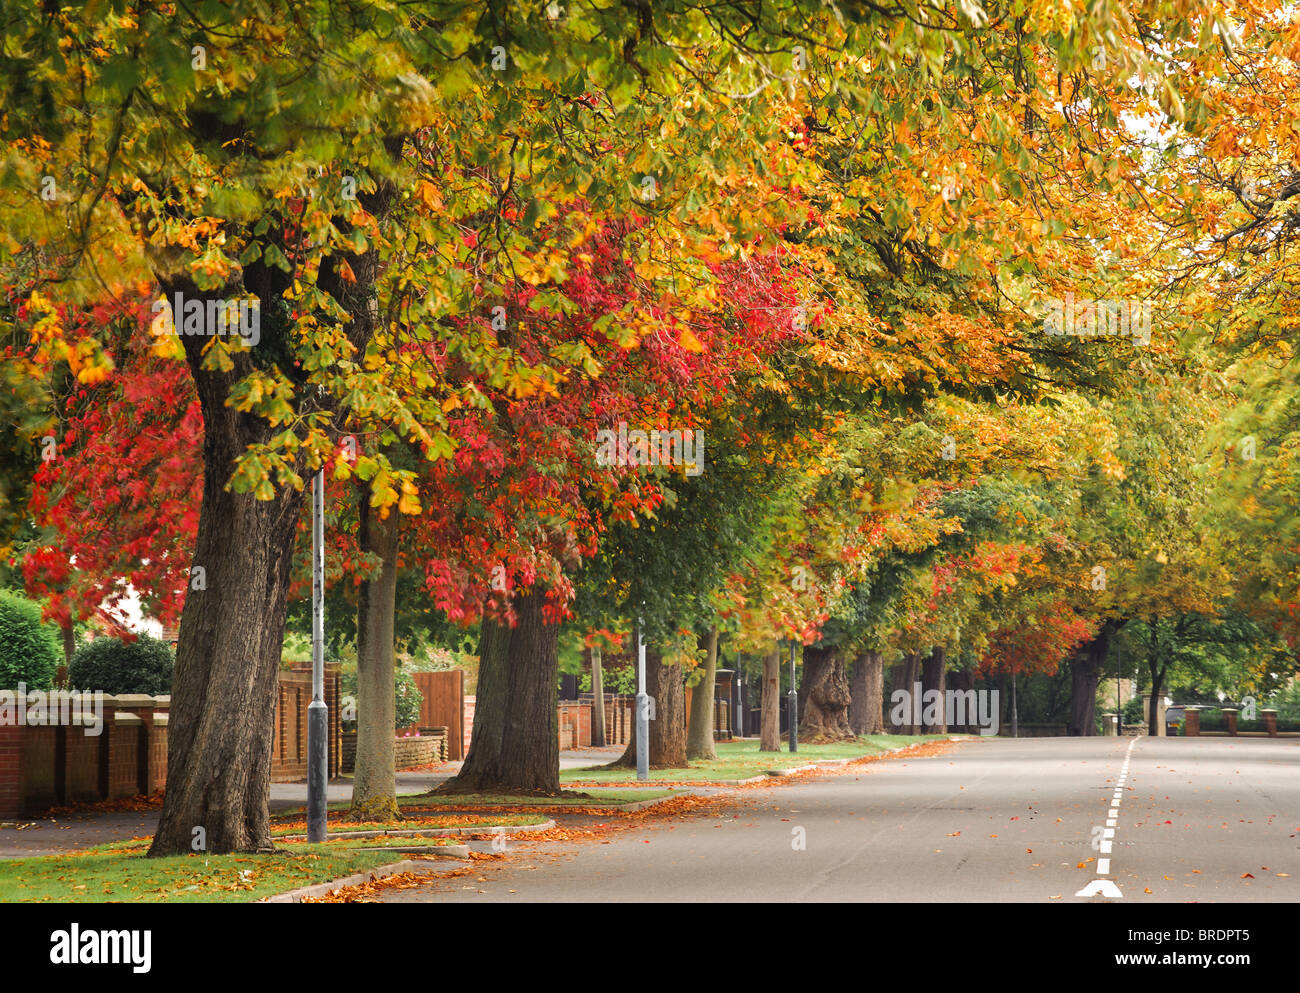 Autumnal tree lined avenue in Royal Leamington Spa, Royal Leamington Spa, Warwickshire, England, UK Stock Photo